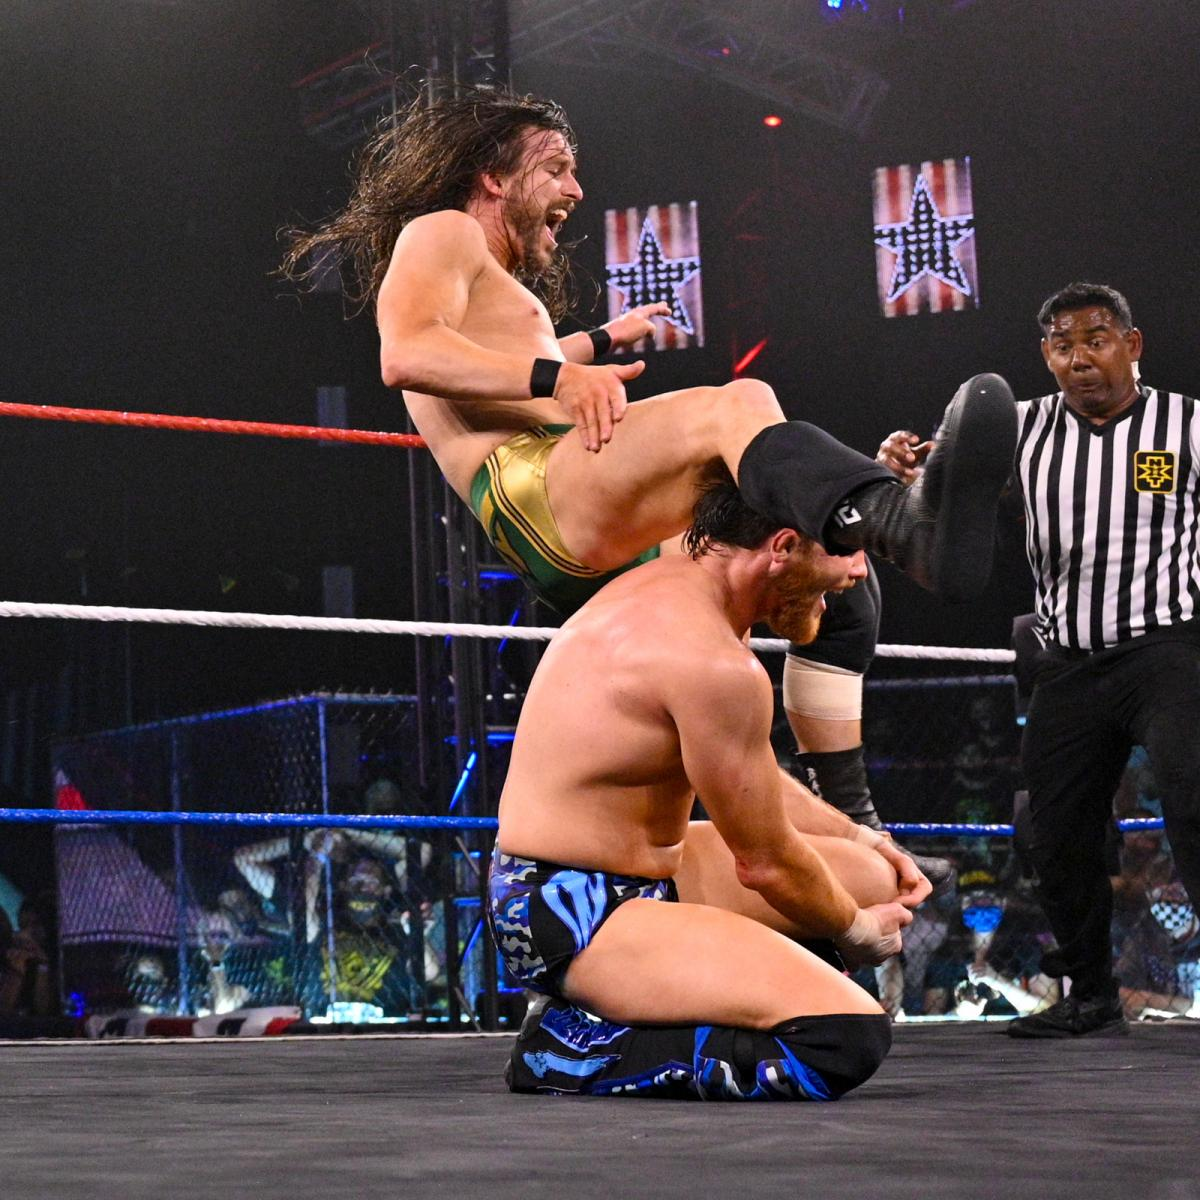 """Panama Sunrise and Last Shot from Cole gave the self-proclaimed """"Greatest Superstar in NXT history"""" another unforgettable triumph"""